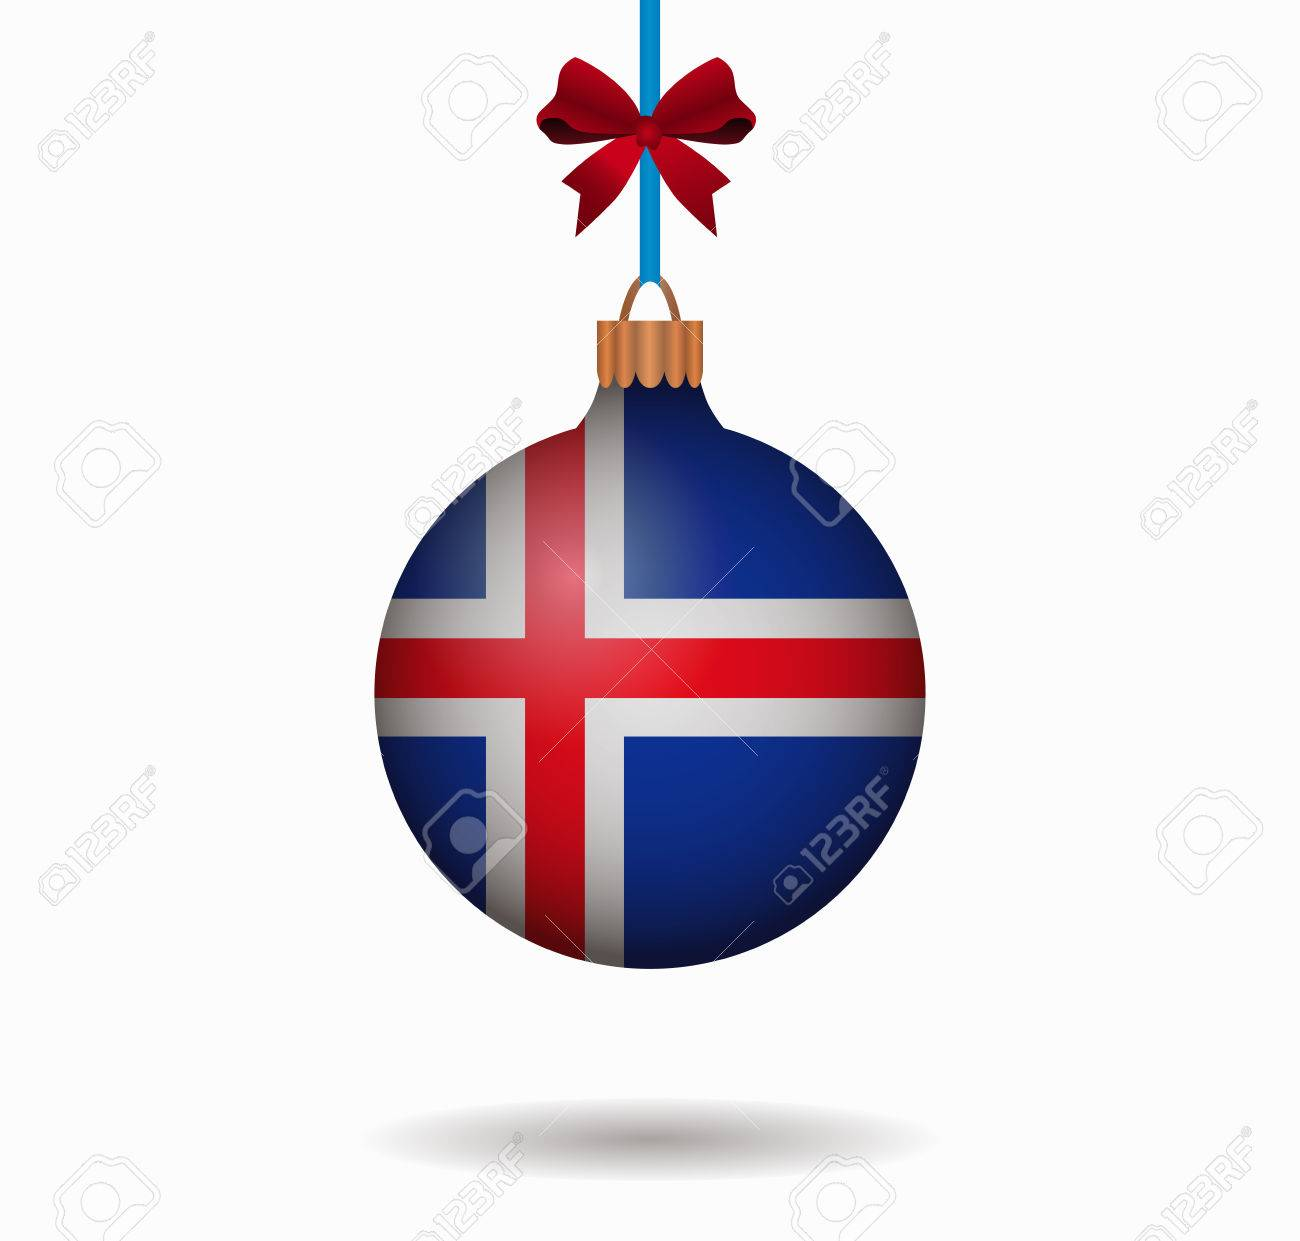 Isolated Christmas Ball Iceland Royalty Free Cliparts, Vectors, And ...